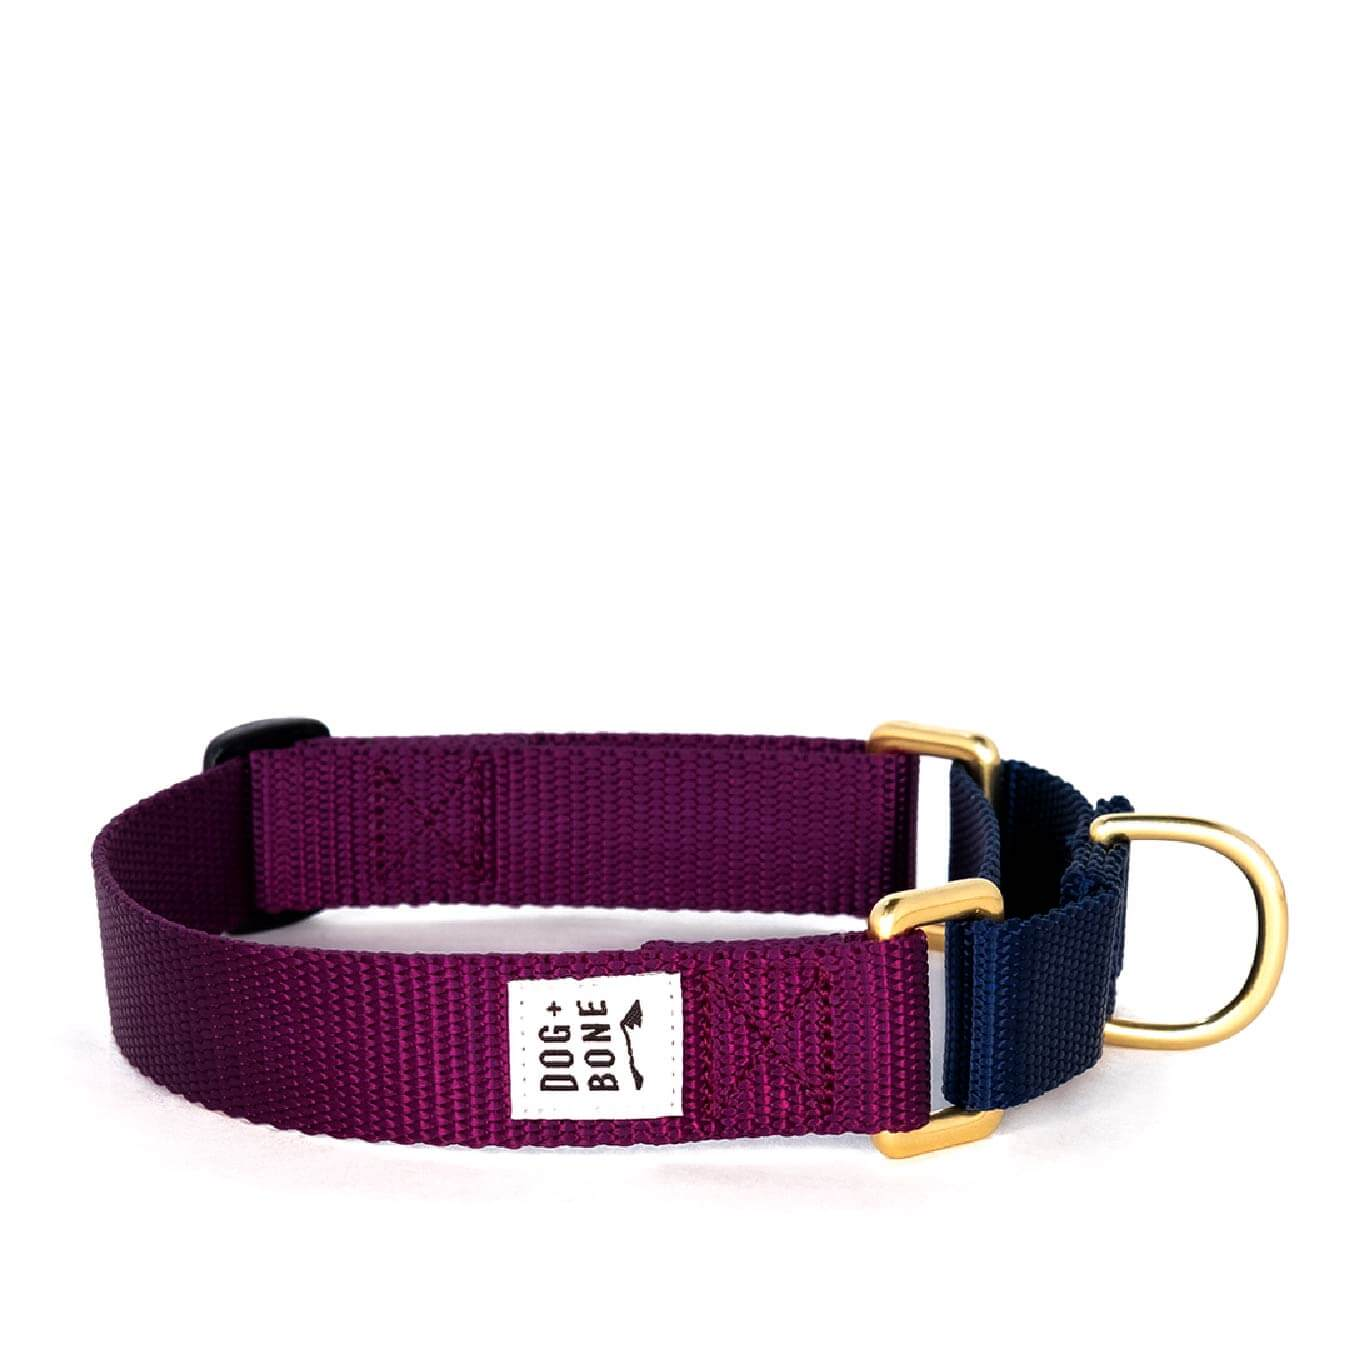 Dog + Bone Martingale Collar | Purple & Navy - Vanillapup Online Pet Shop